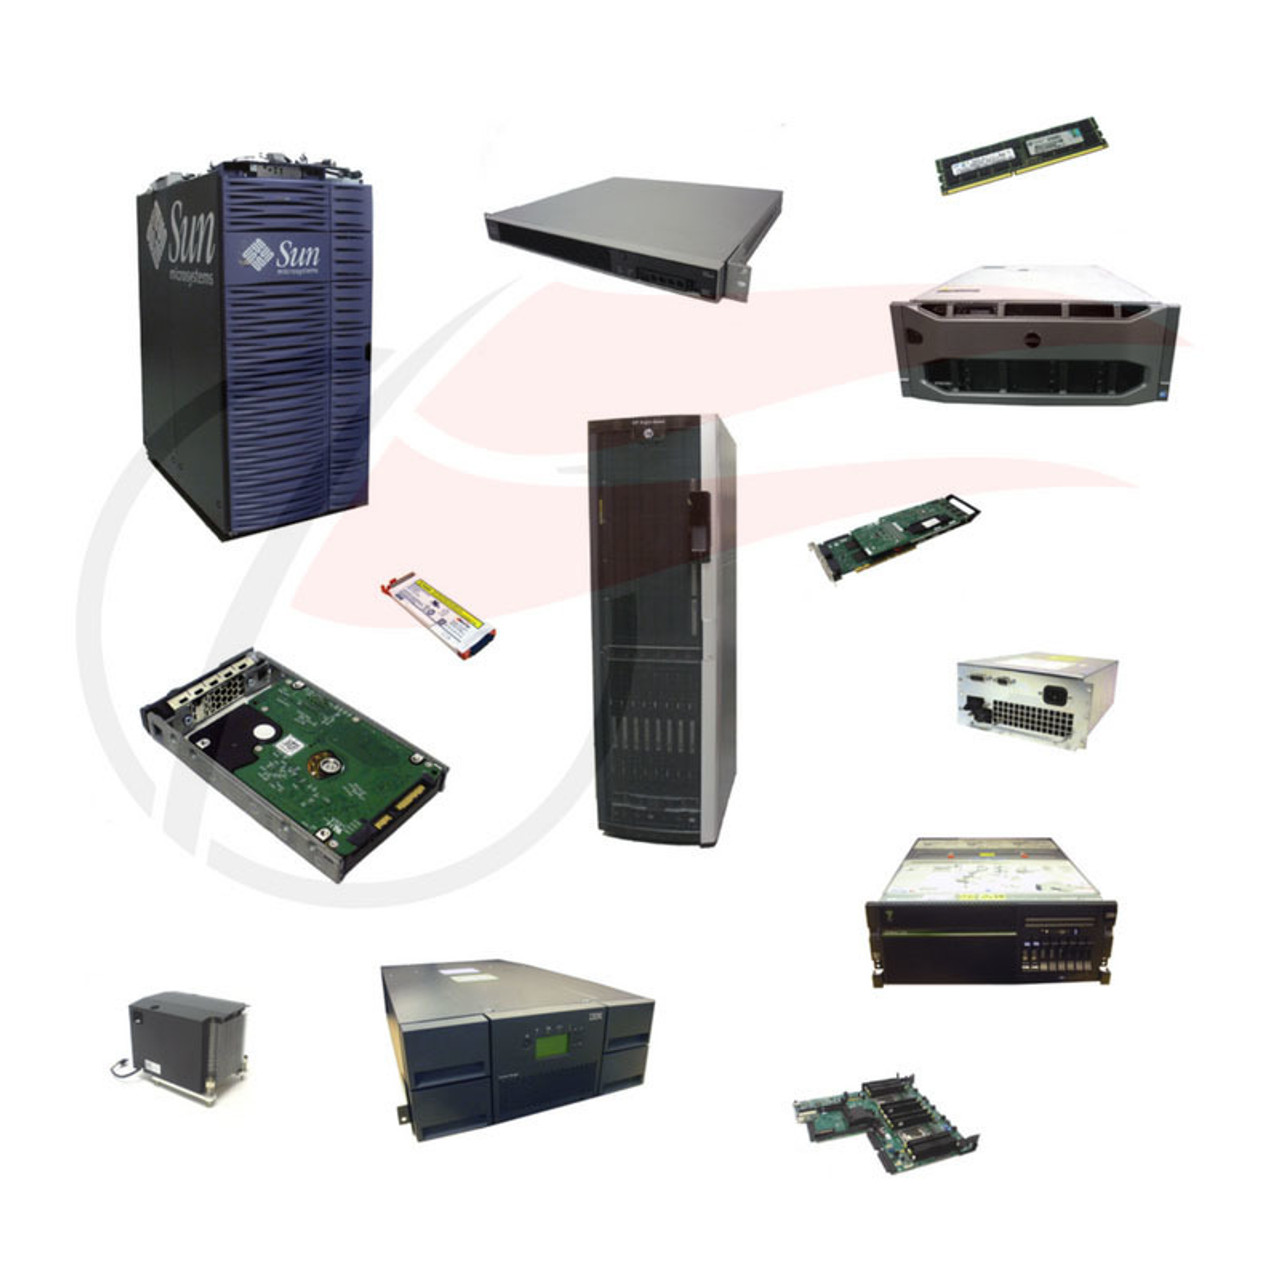 HP Integrity rx6600 Spare Parts